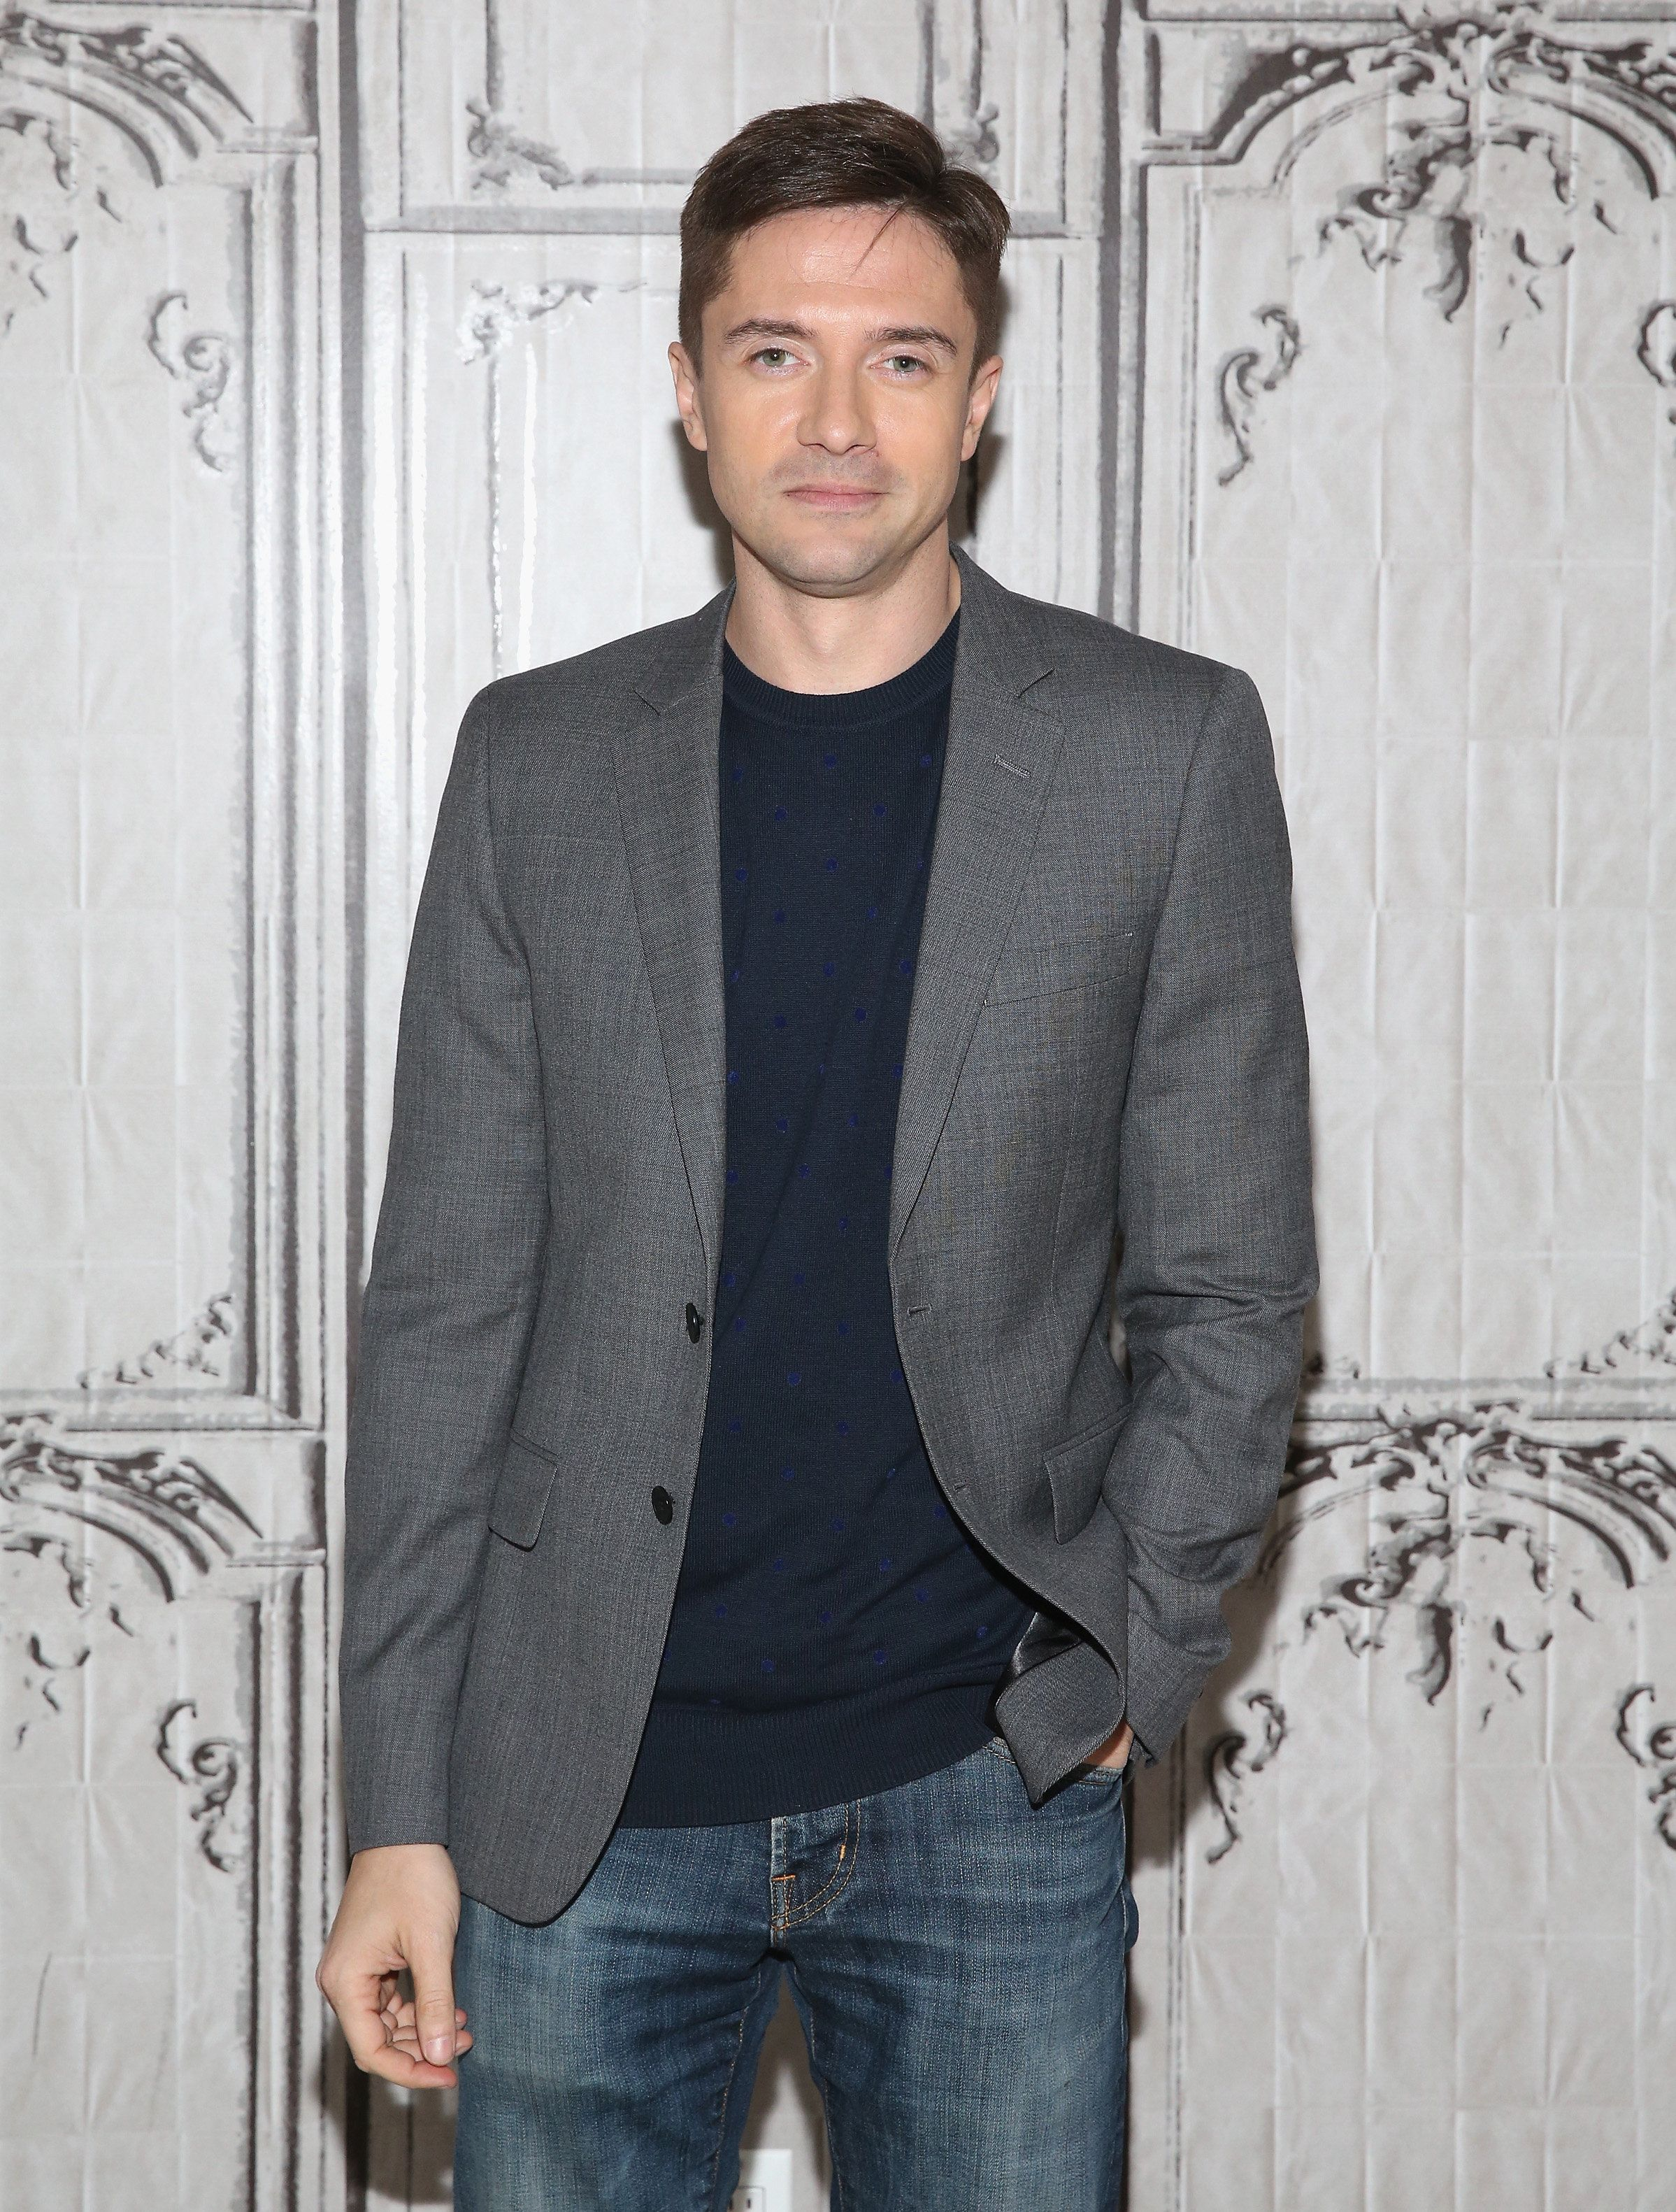 NEW YORK, NY - NOVEMBER 04:  Topher Grace attends AOL BUILD Presents: Topher Grace, 'Truth' at AOL Studios In New York on November 4, 2015 in New York City.  (Photo by Robin Marchant/Getty Images)